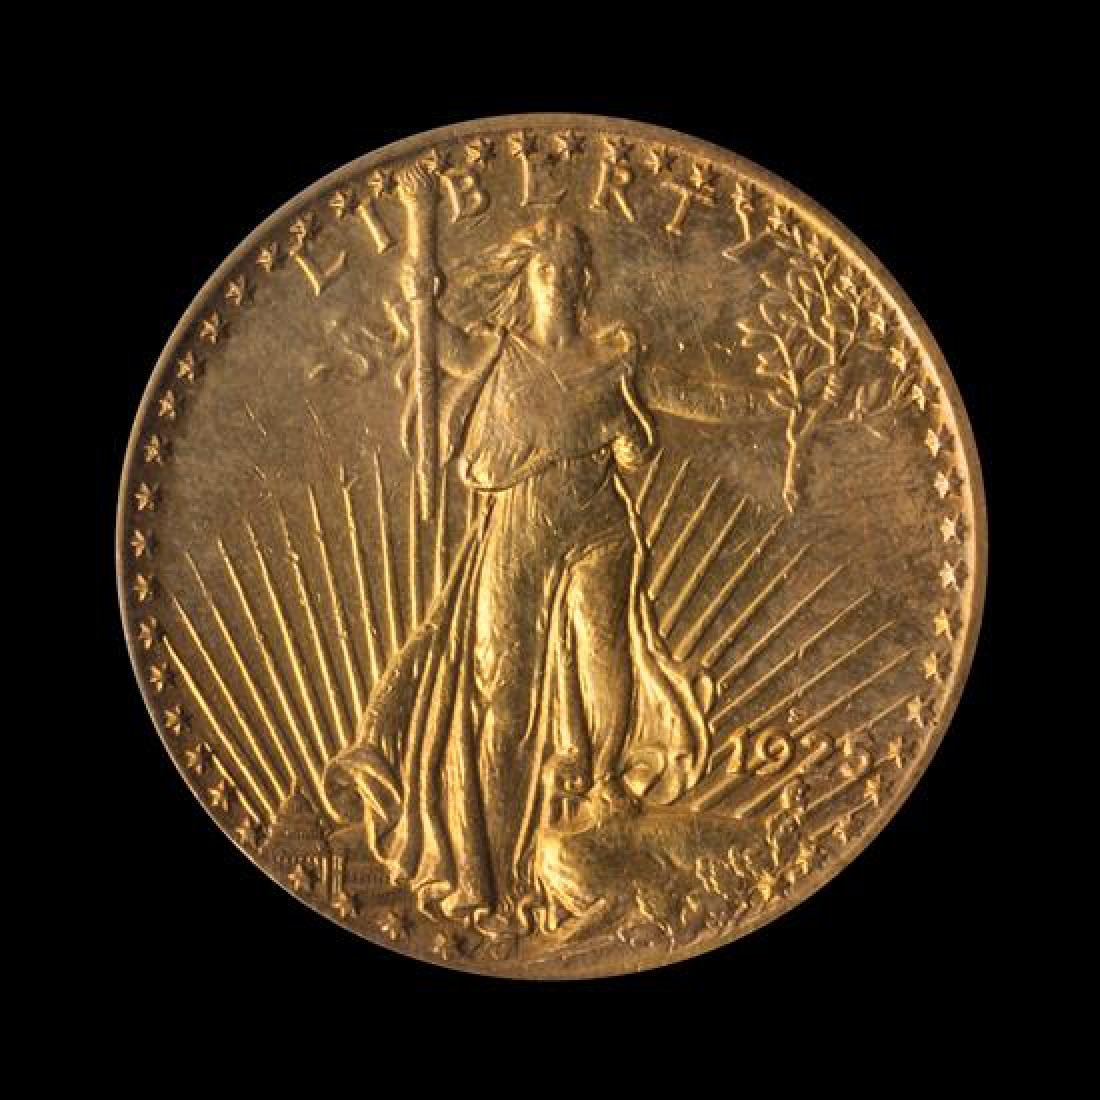 A United States 1925-S Saint-Gaudens $20 Gold Coin